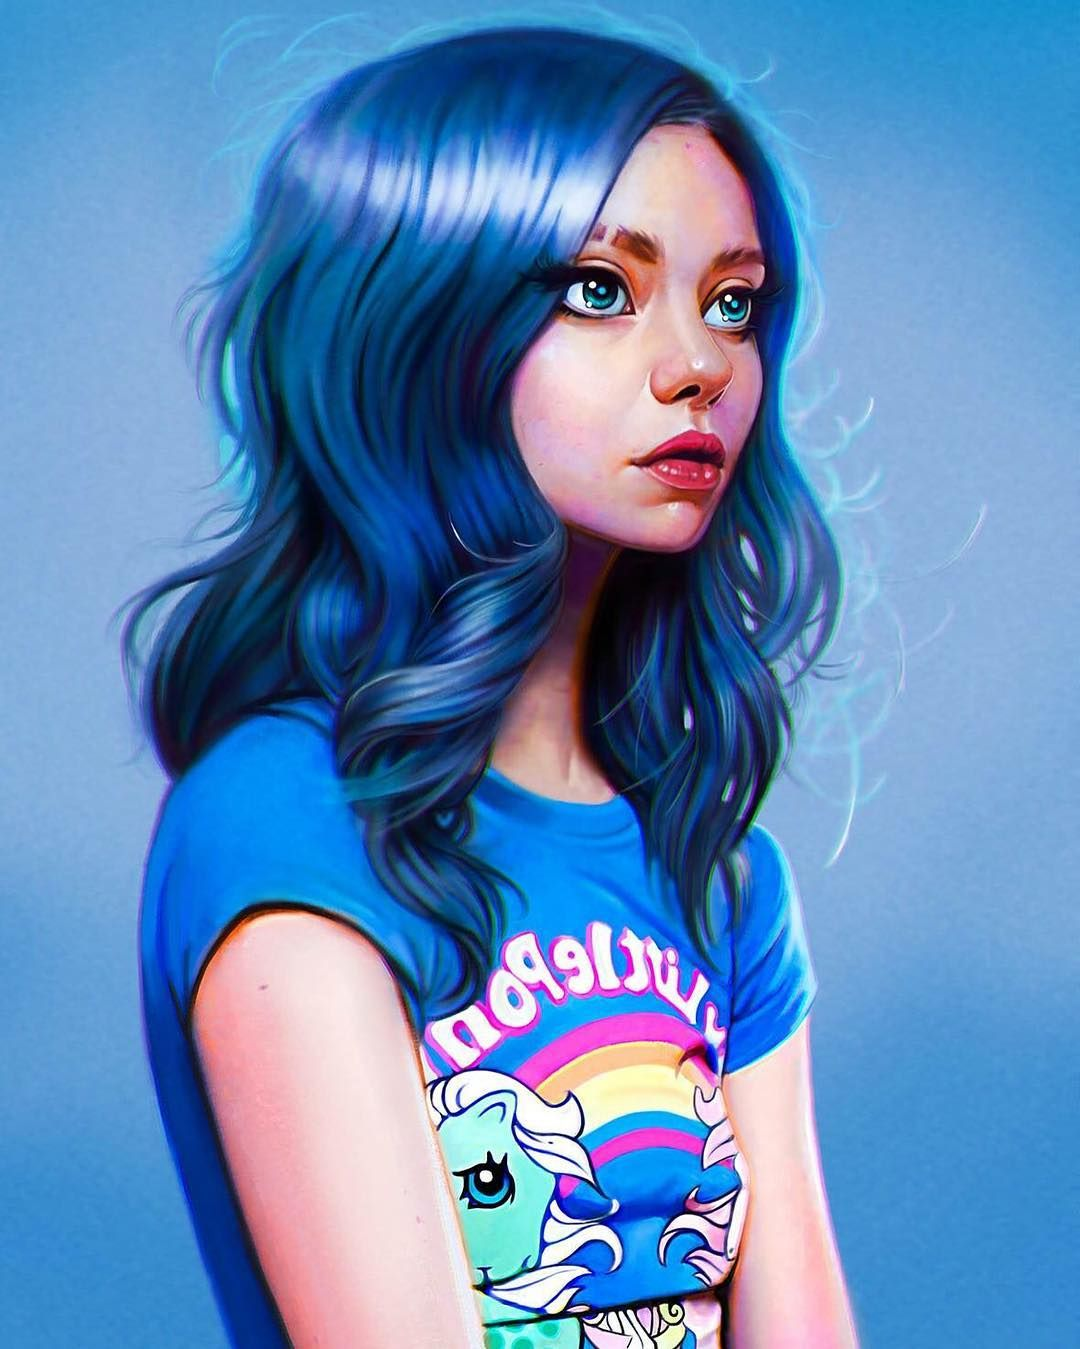 Awesome blue hair cool tshit NICE color contrast just